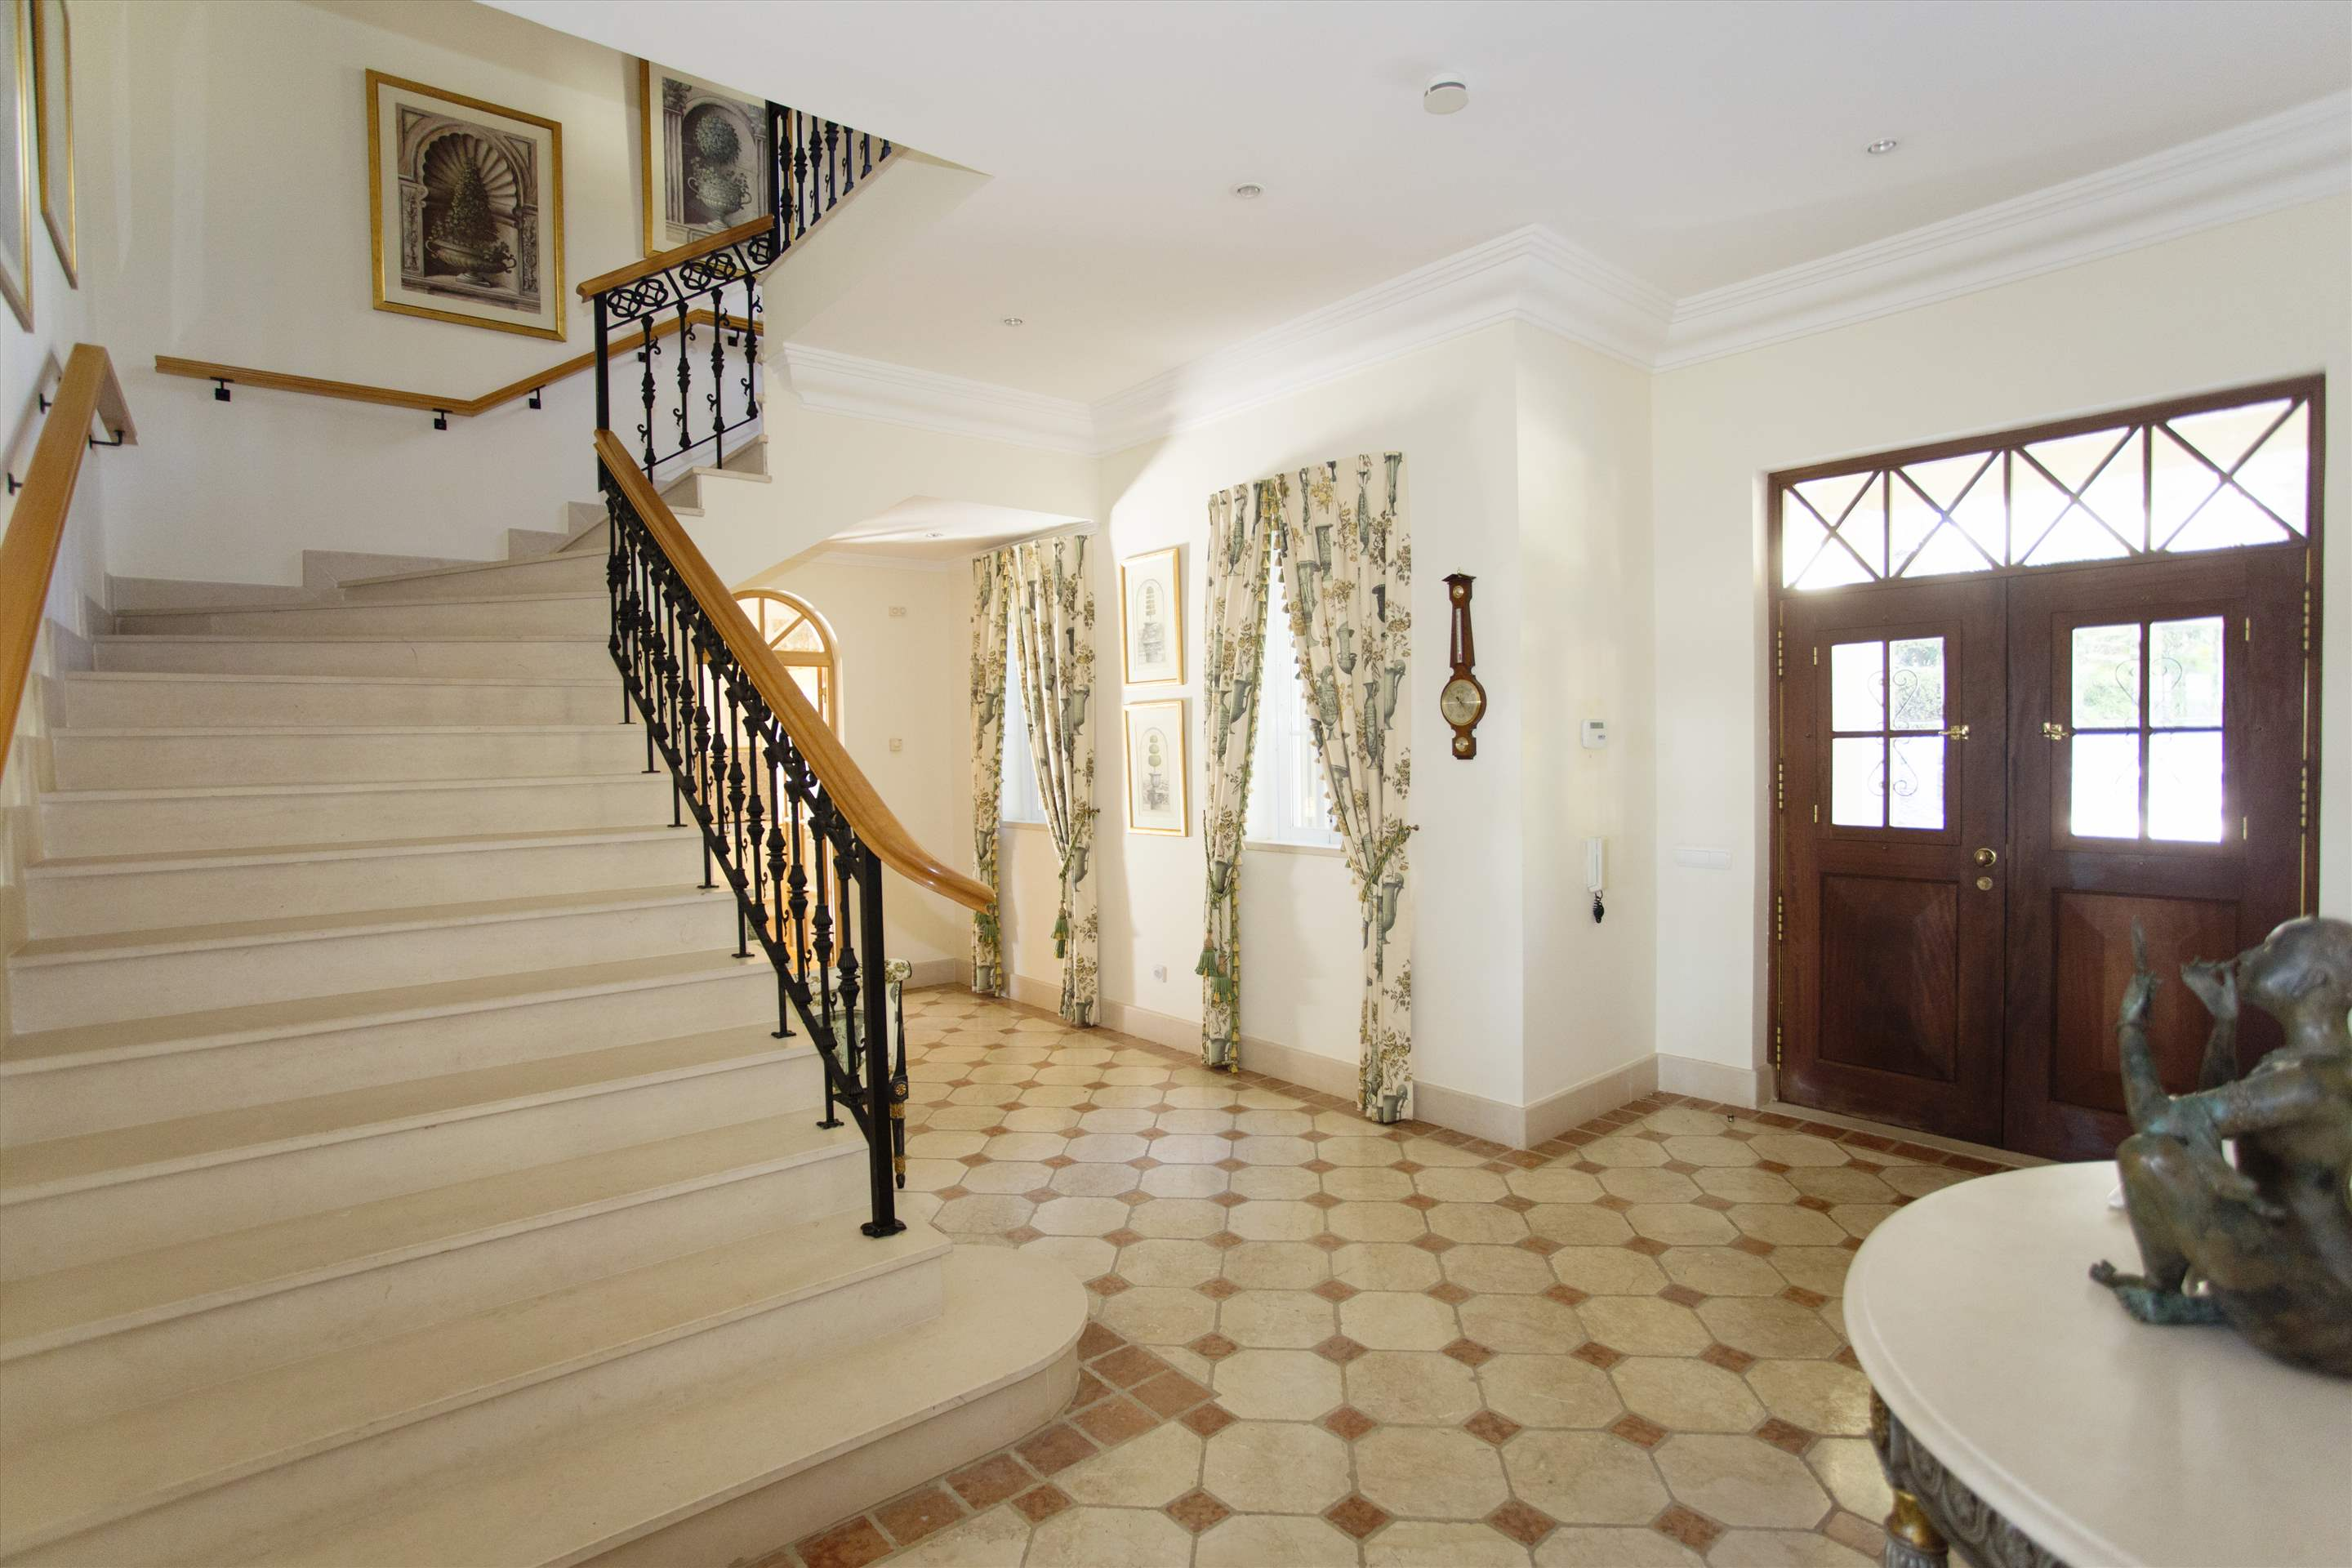 Villa Palmeiras Altas, 5 bedroom villa in Quinta do Lago, Algarve Photo #18